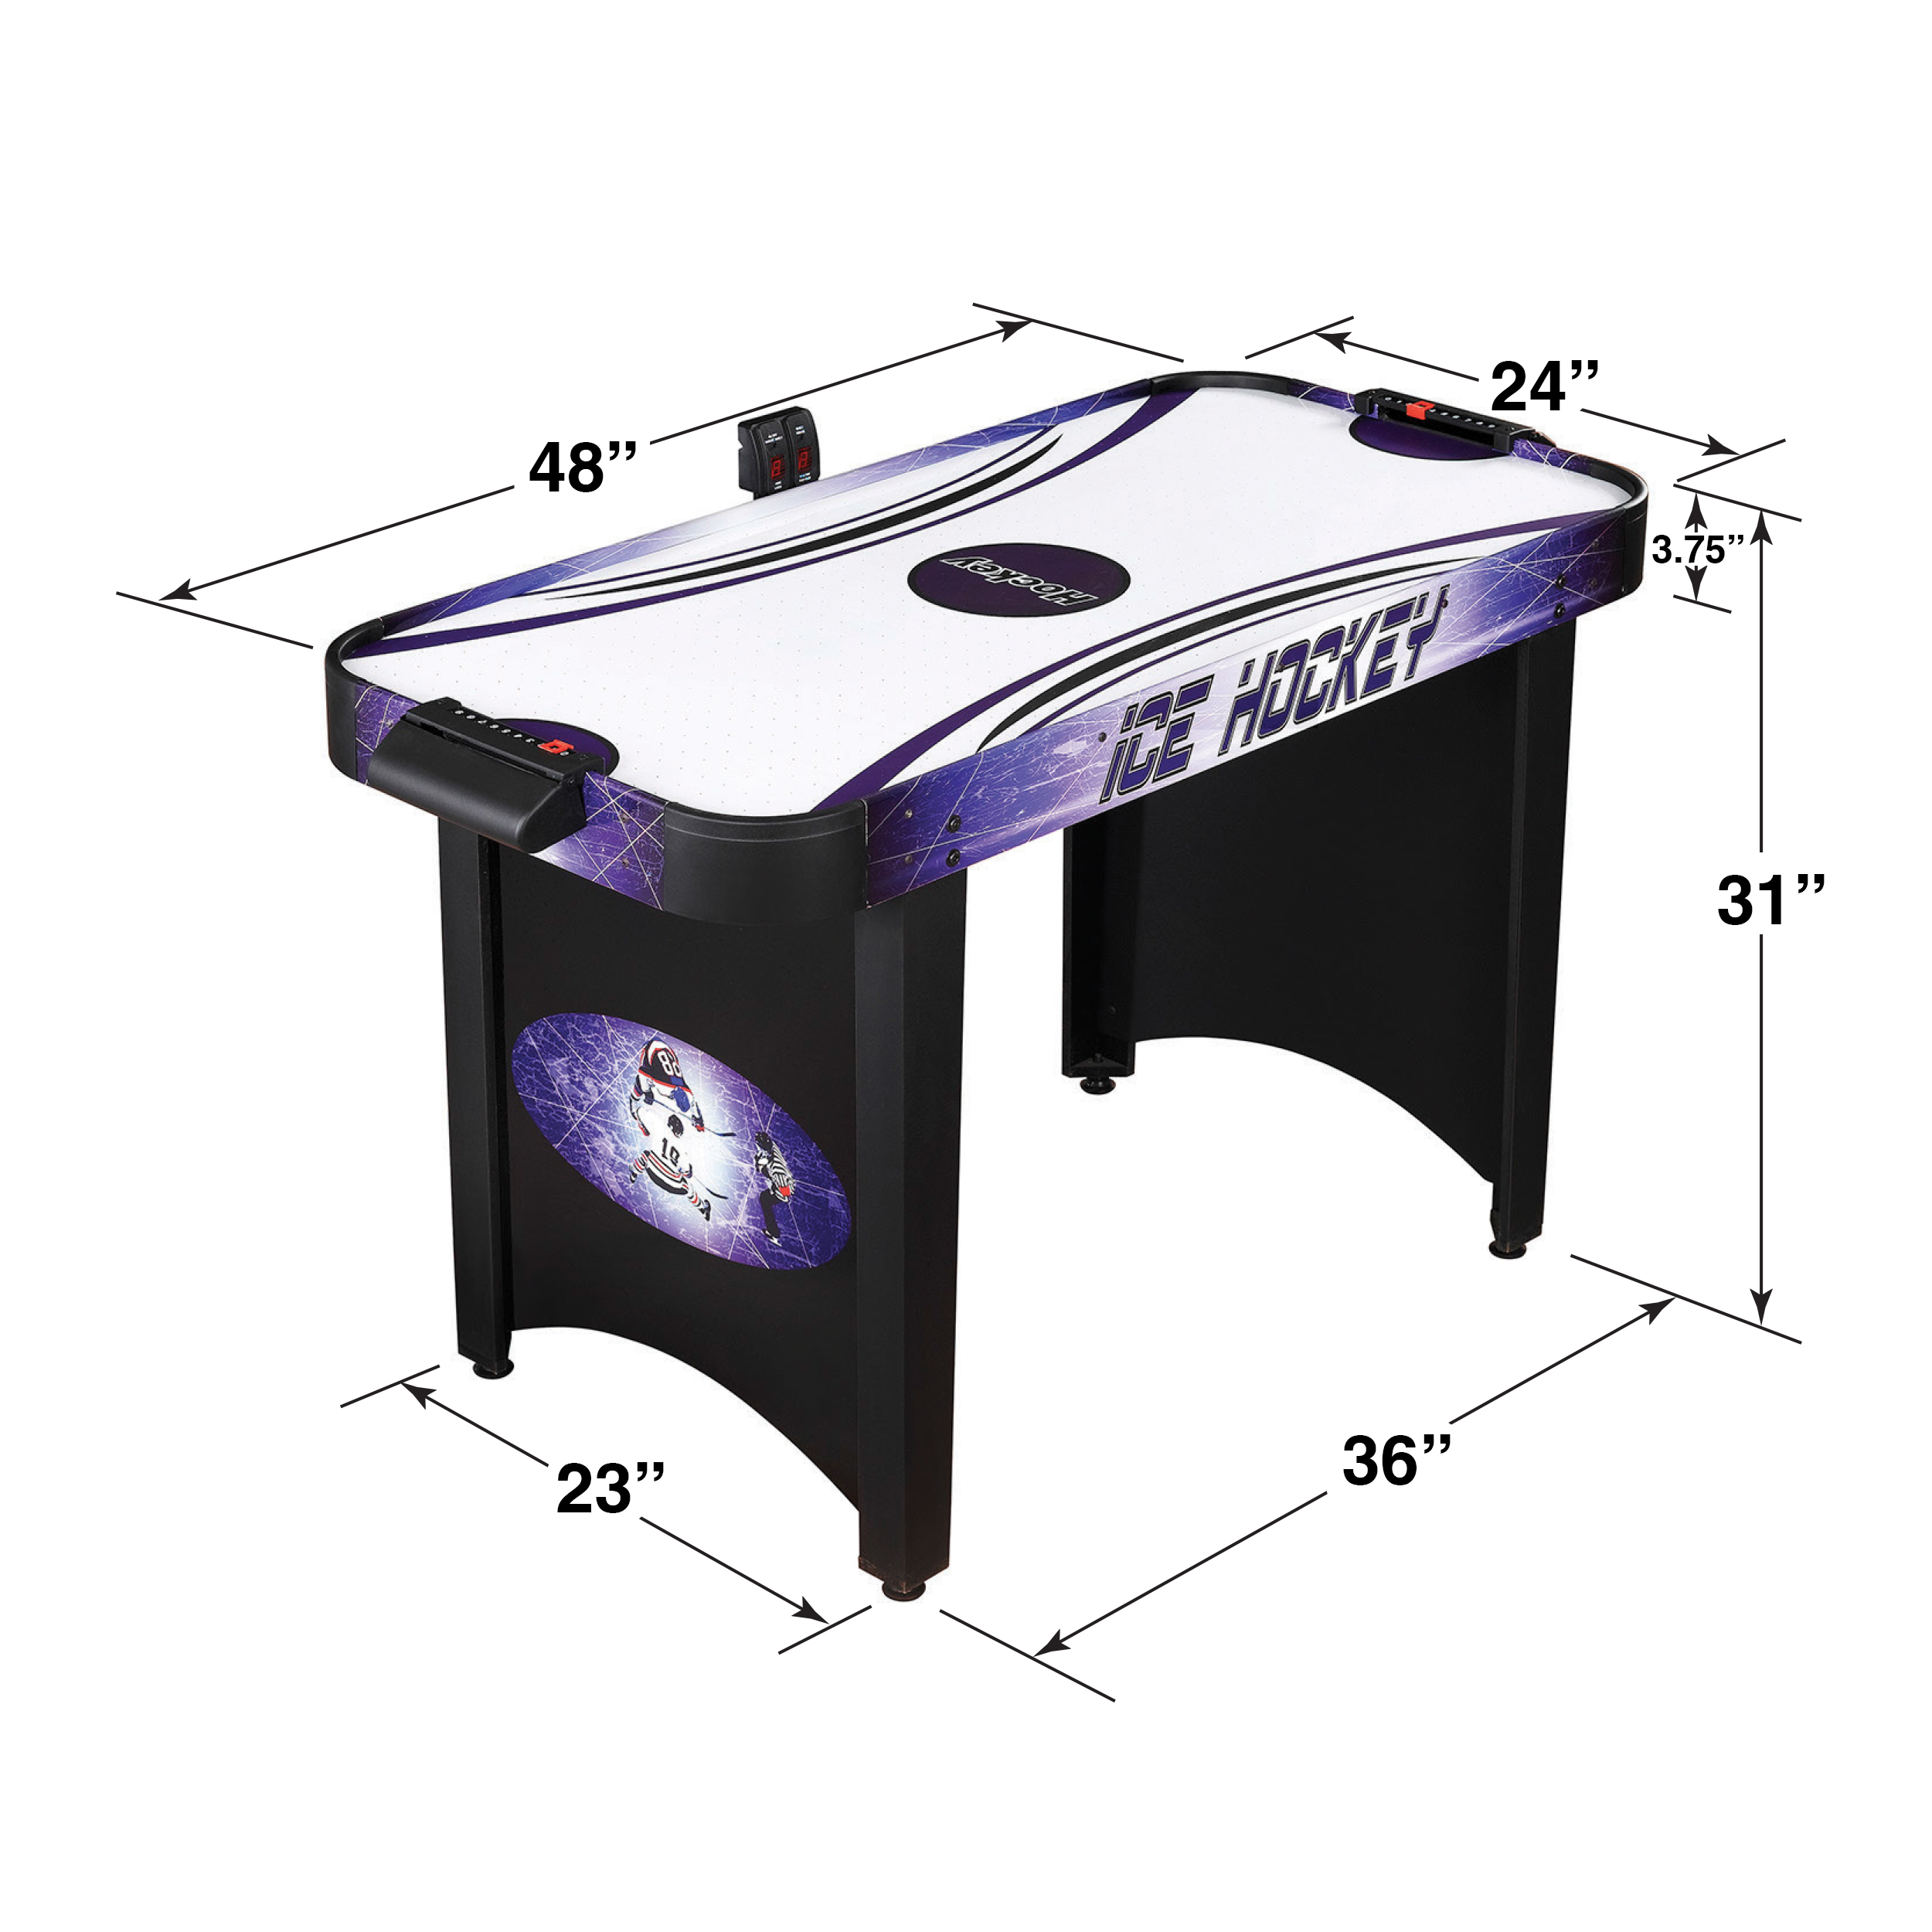 Hathaway Hat Trick 4 Ft Air Hockey Table